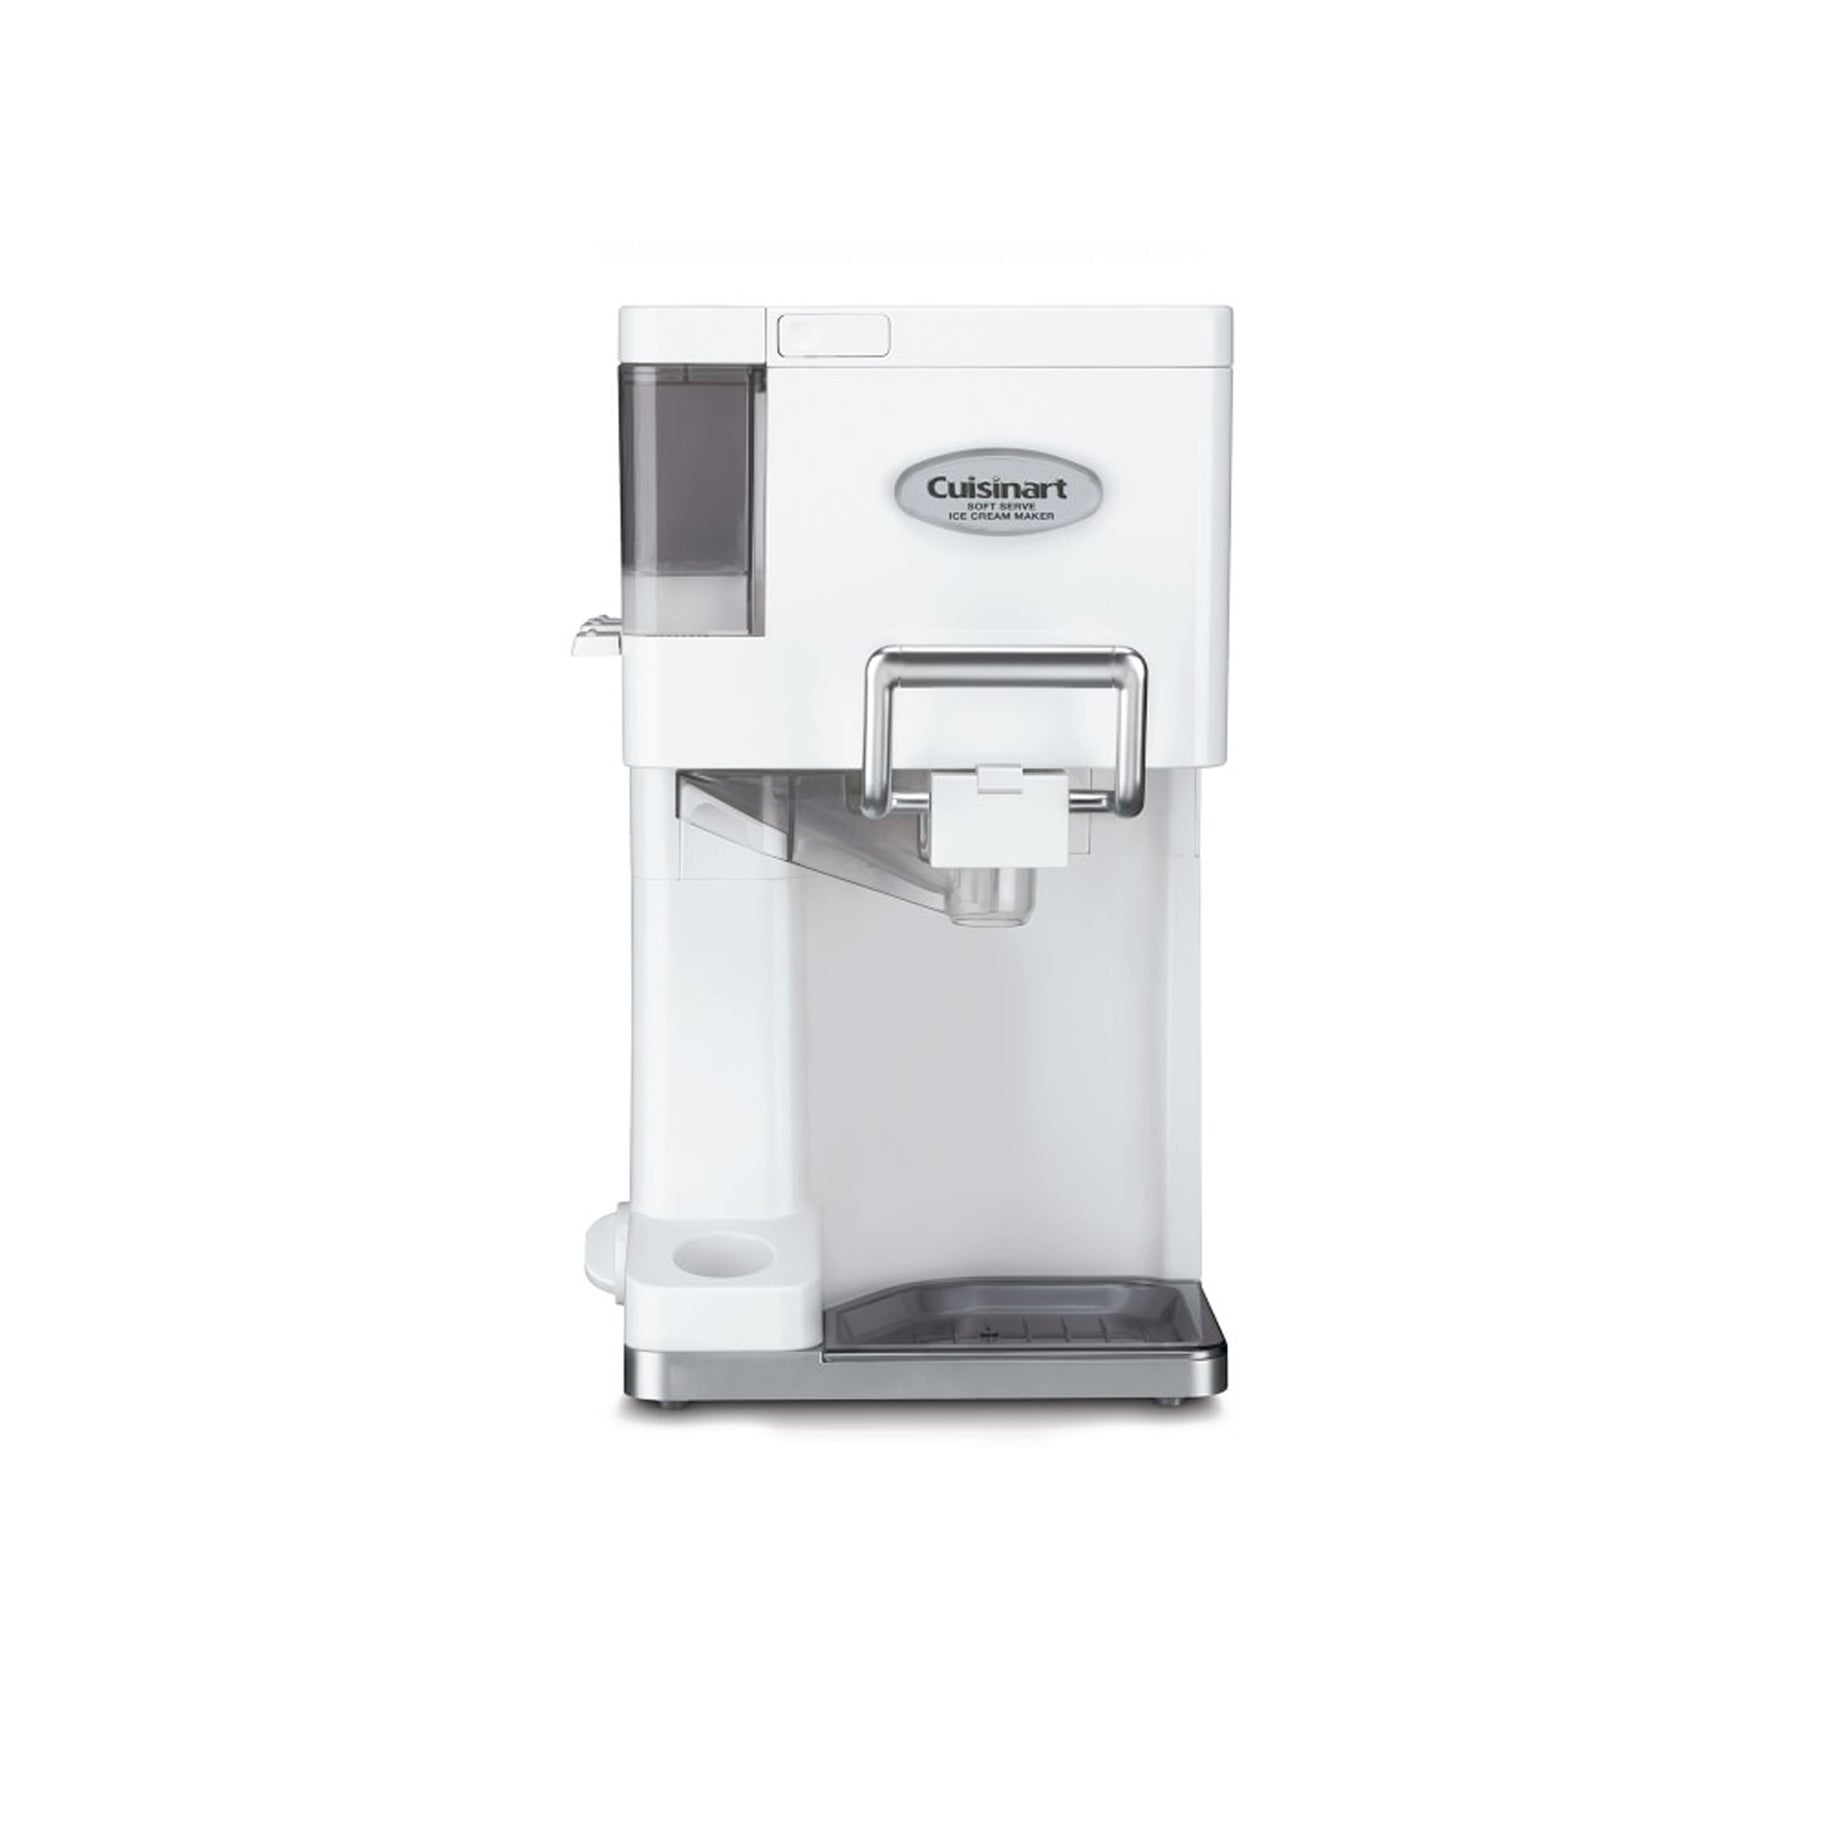 The Best Ice Cream Makers Option: Cuisinart Mix It In Soft Serve Ice Cream Maker